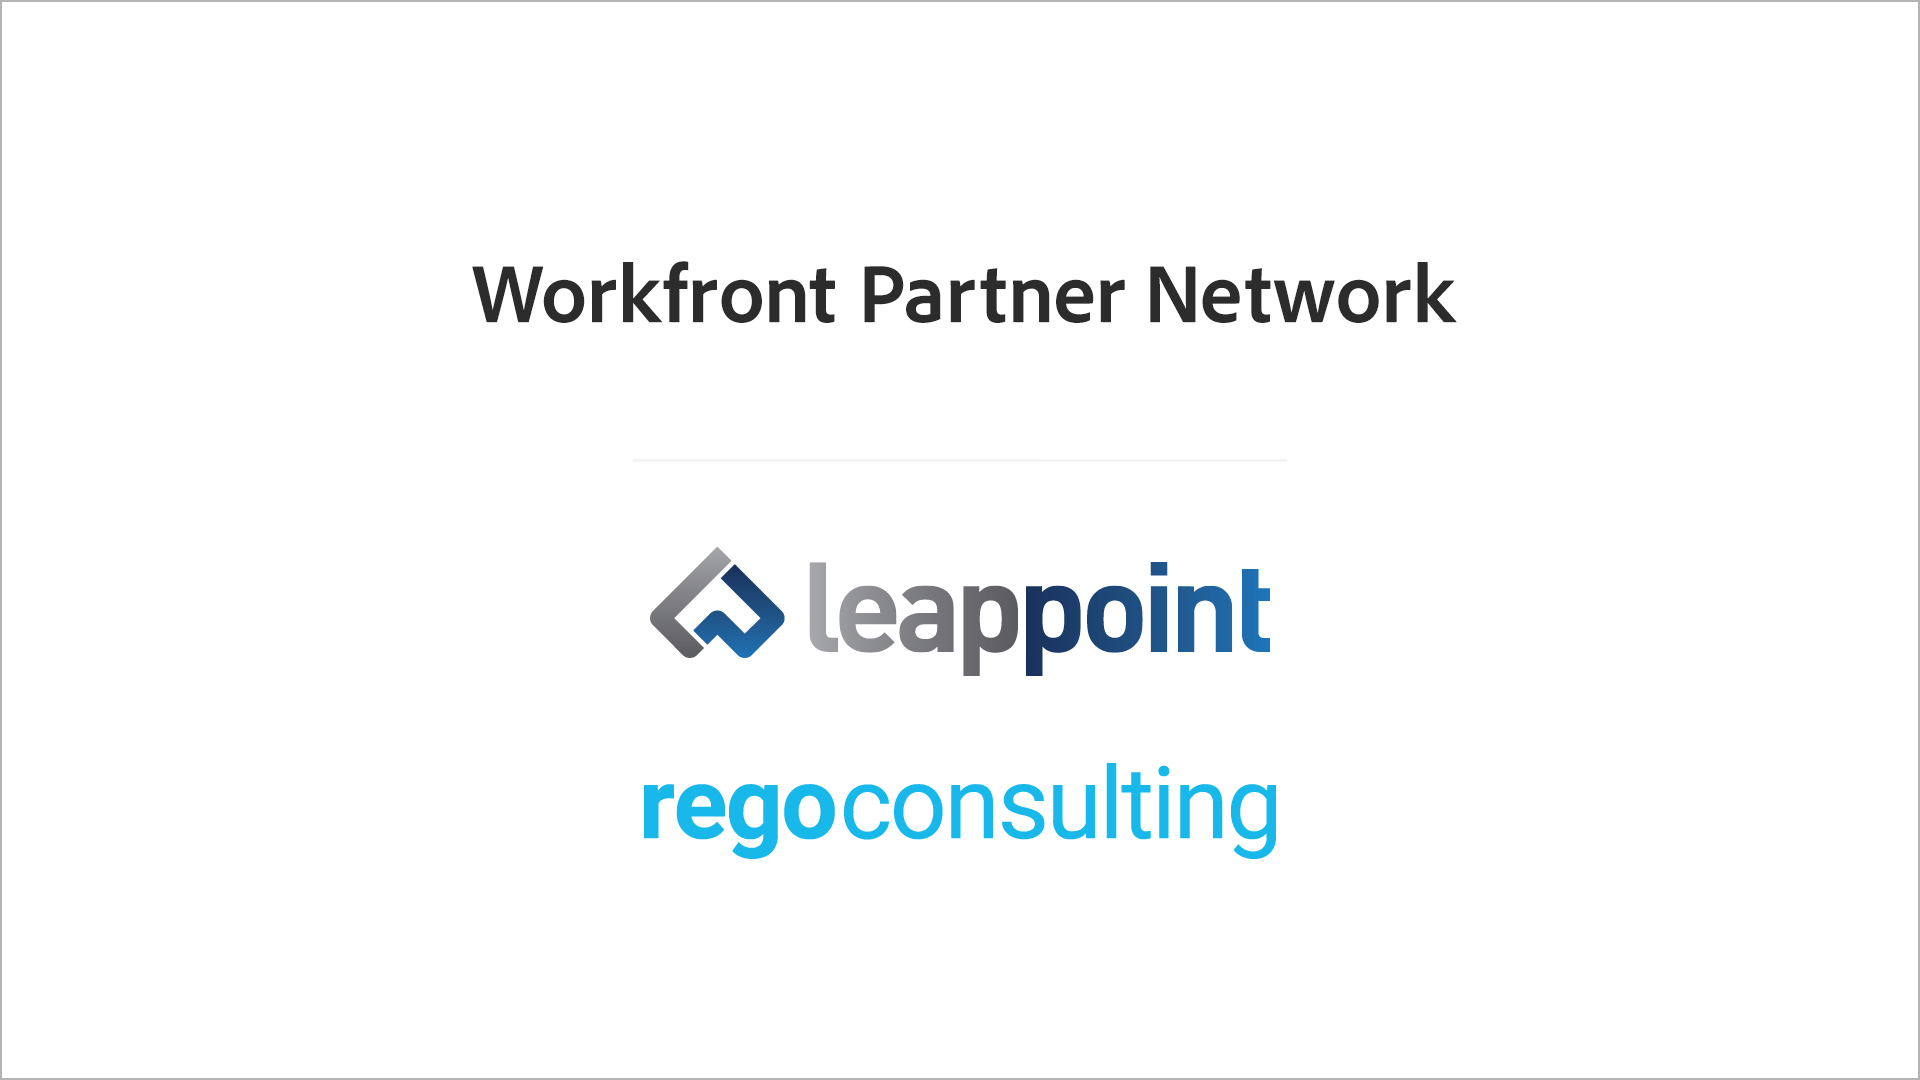 Leappoint and Regoconsulting logos